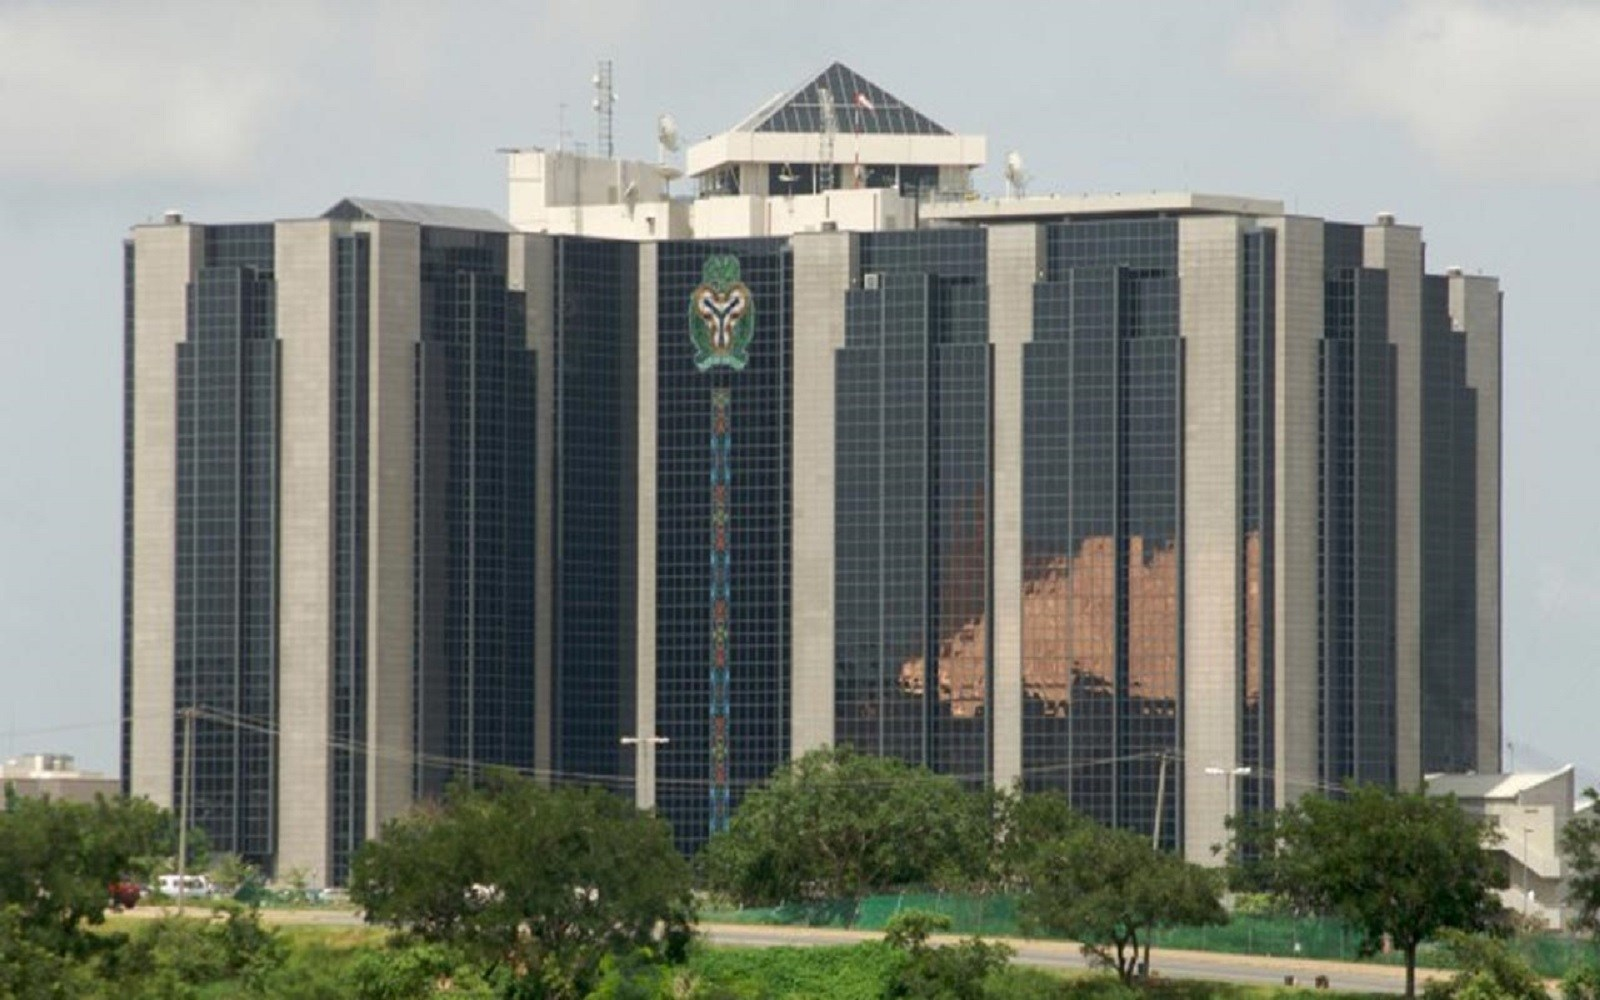 The Central Bank of Nigeria (CBN), said the aggregate foreign exchange inflow into the country stood at $91 billion in 2017, a record compared with 2016.